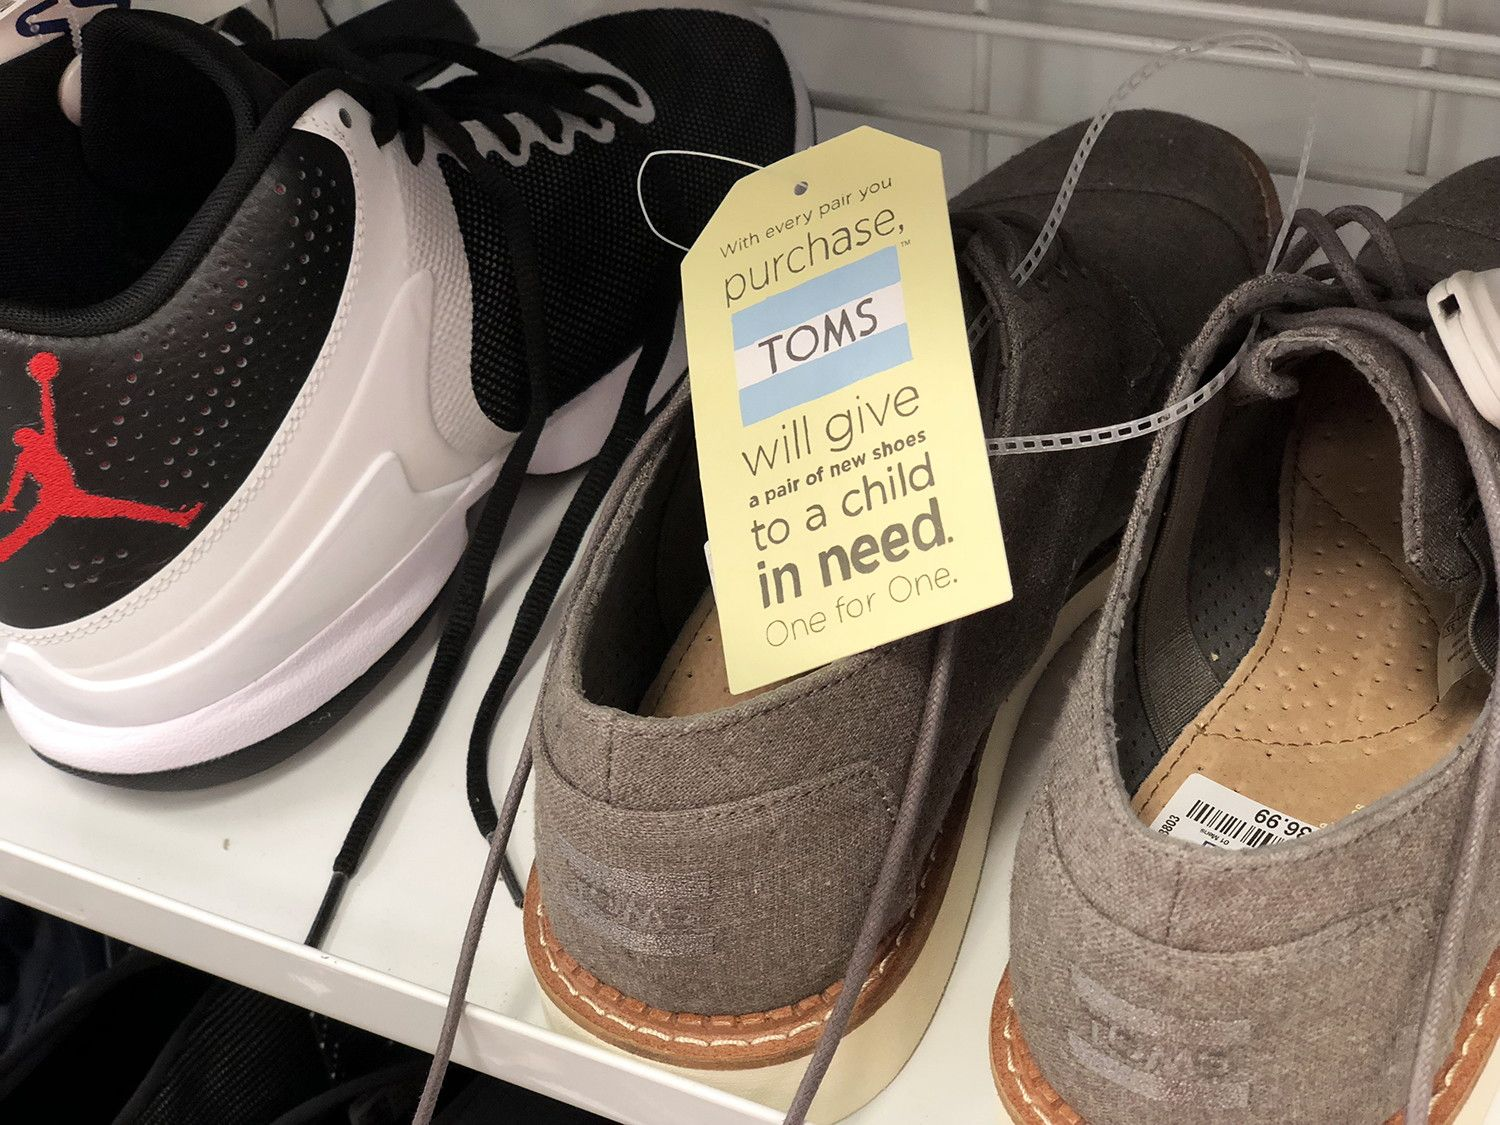 96d4c704624791 31 Surprising Name Brands You ll Find at Ross - The Krazy Coupon Lady